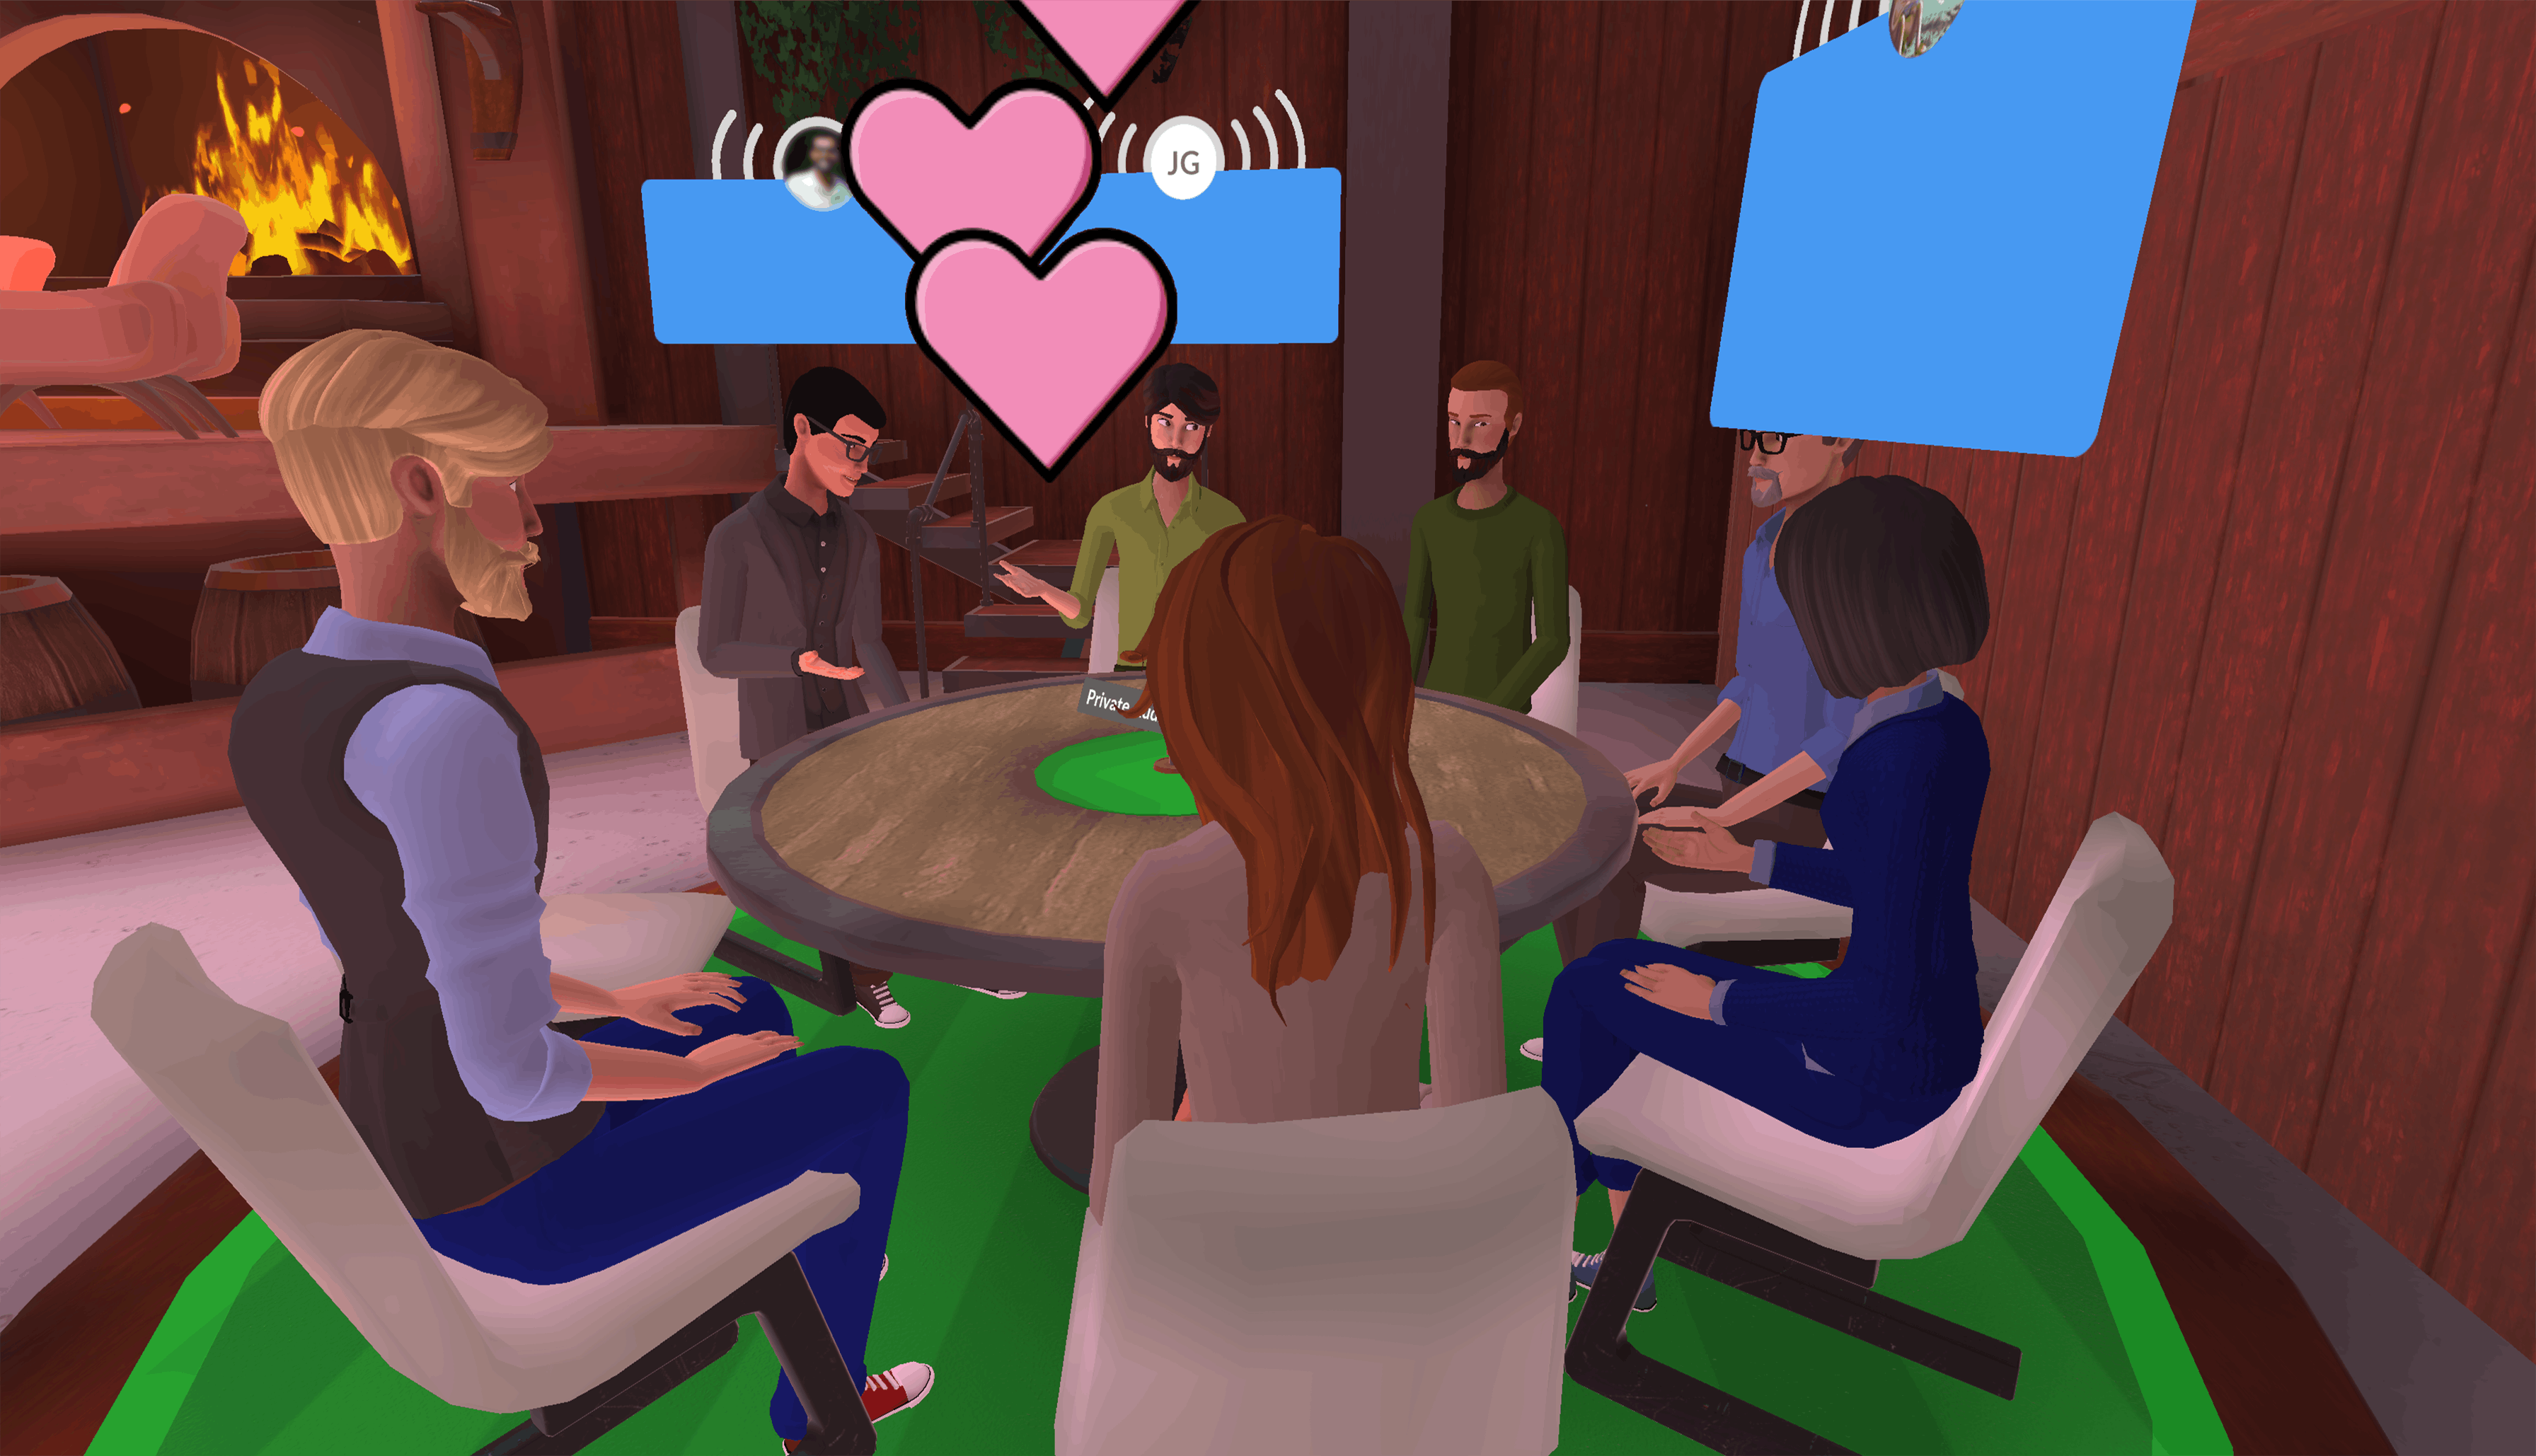 family and friends gatherings in Teooh's avatar-based virtual reality platform